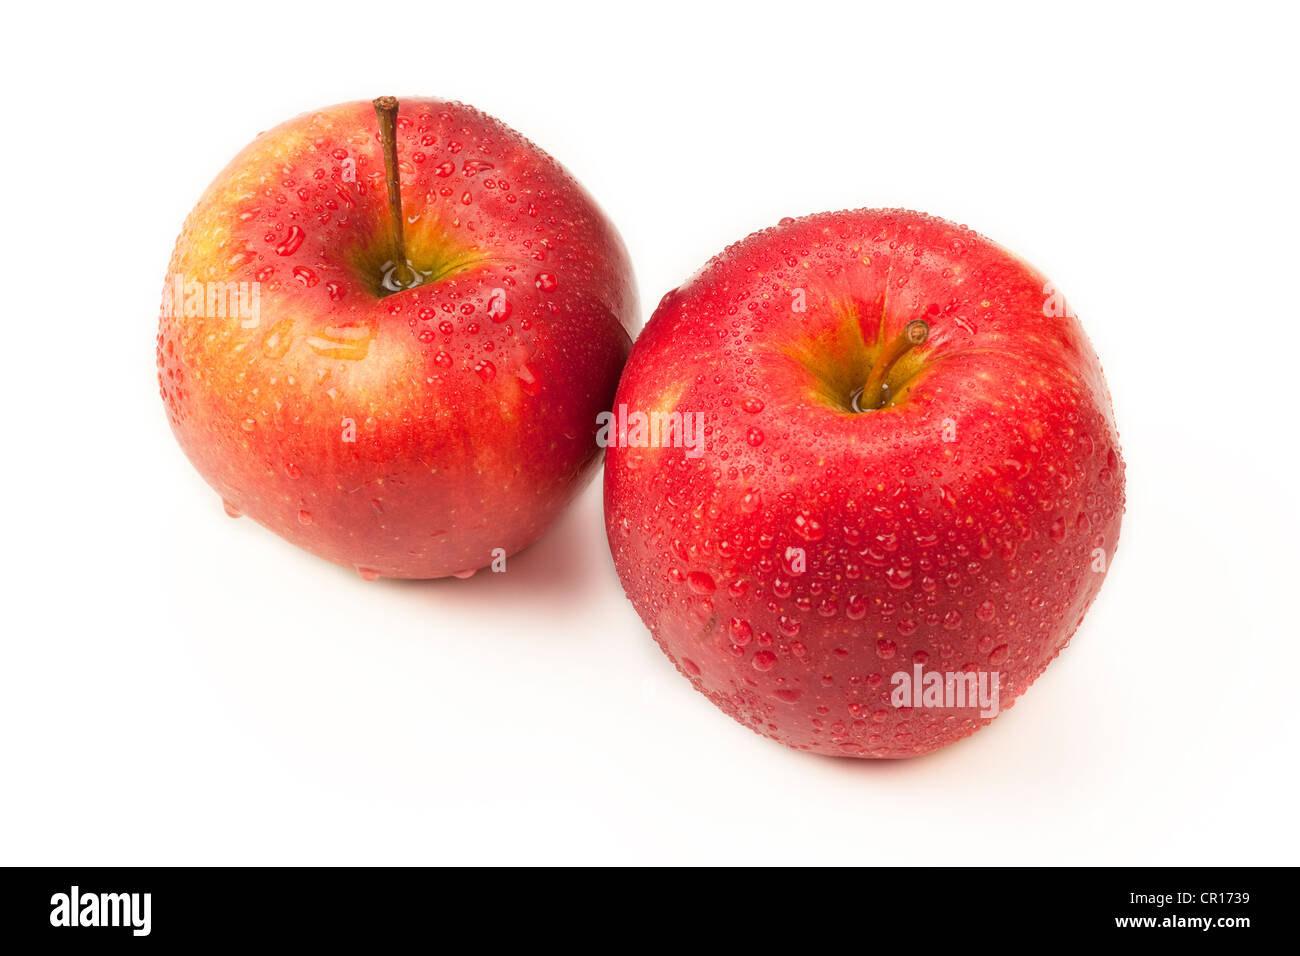 Two apples - Stock Image